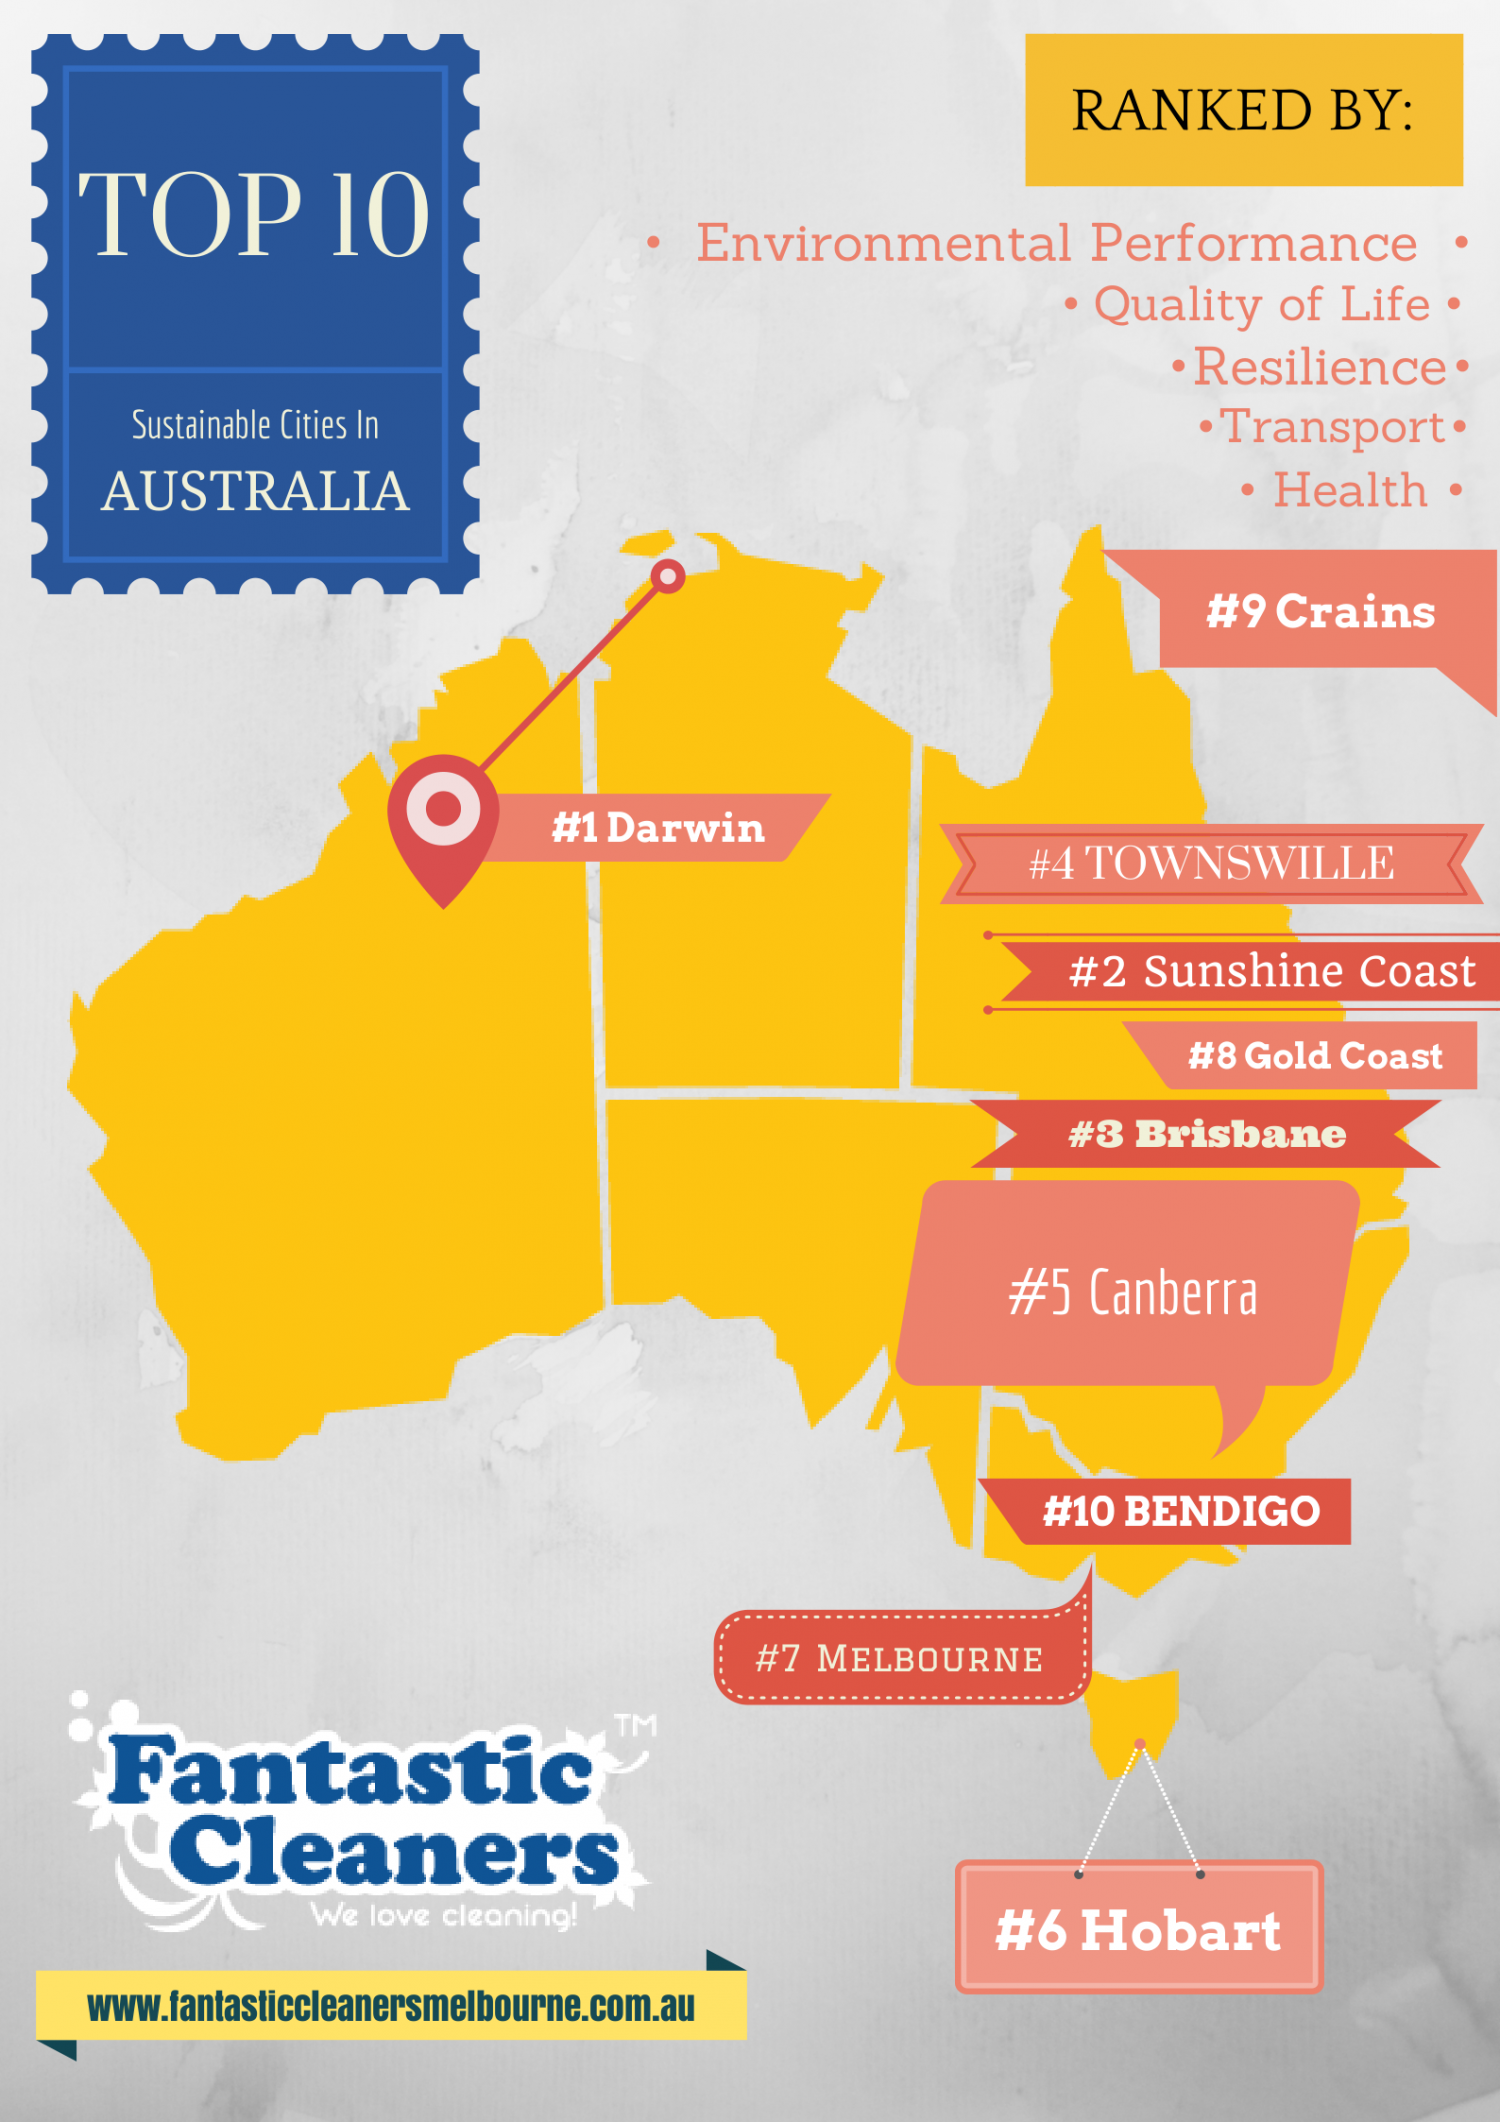 Top 10 Sustainable Cities in Australia Infographic